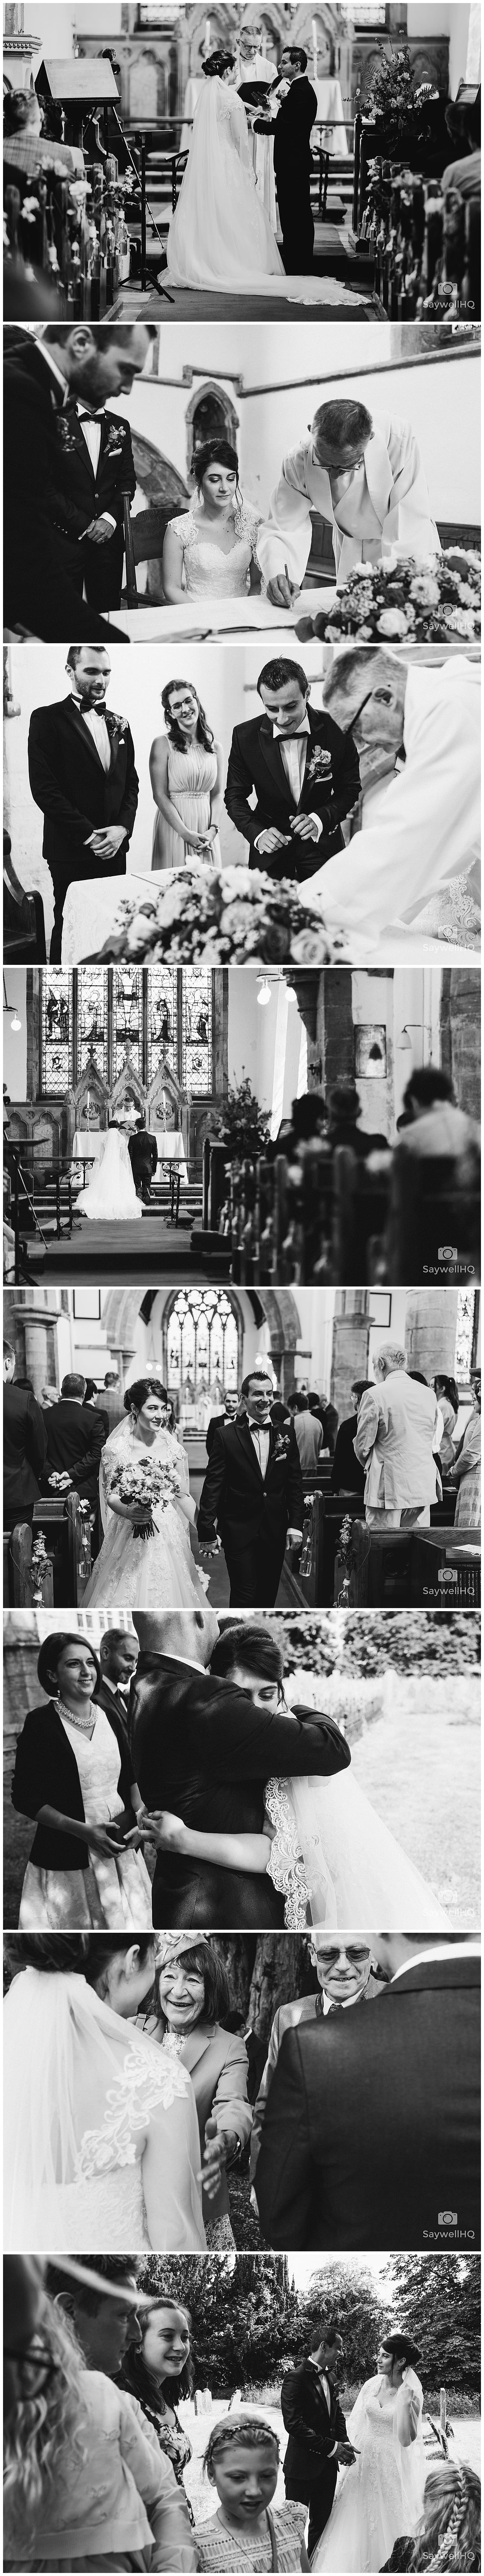 Nottingham Church Wedding Wedding Photography - Church wedding post ceremony celebrations with family and friends